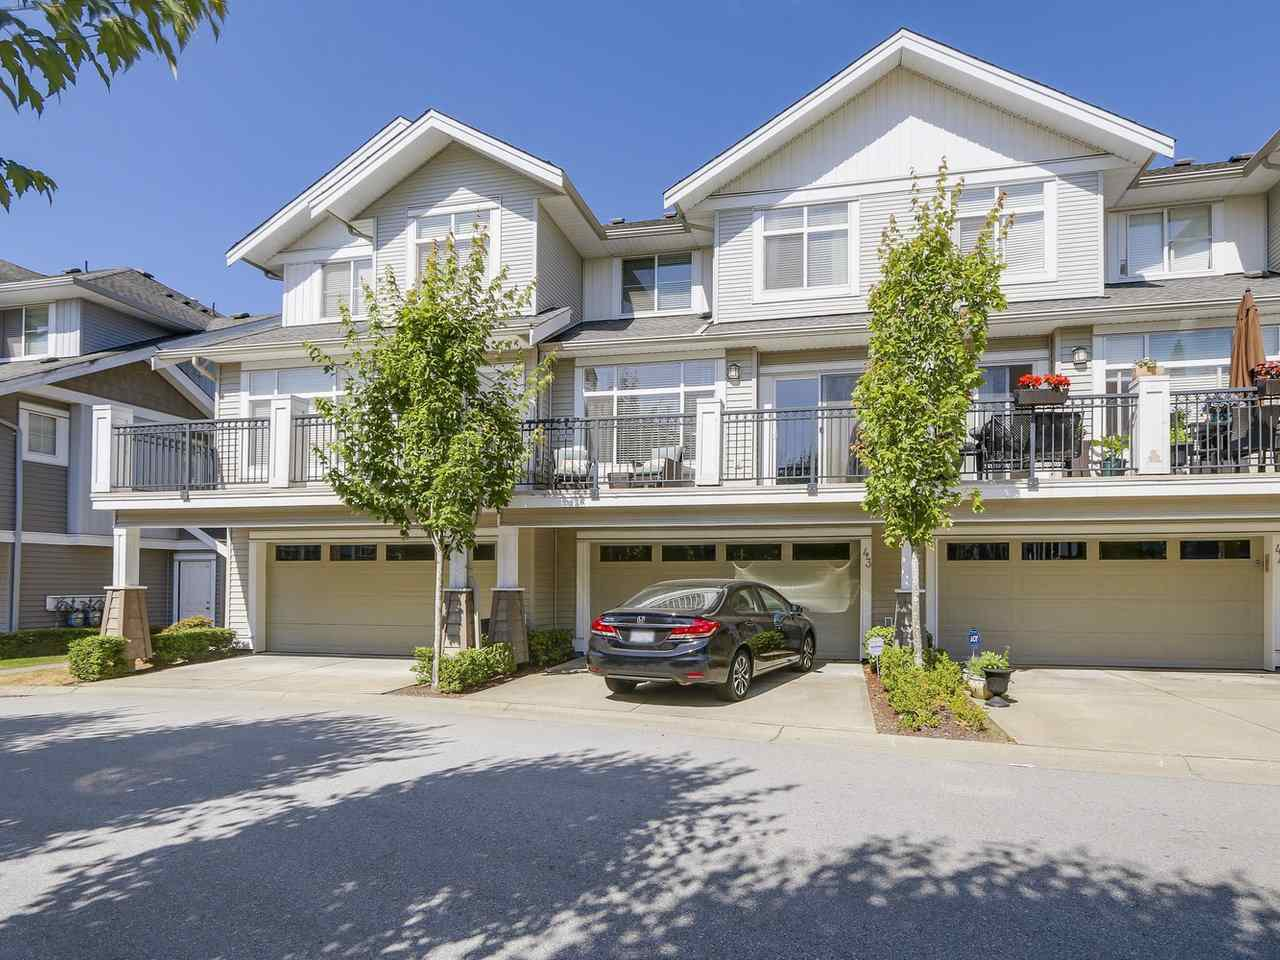 Photo 20: Photos: 43 19330 69 AVENUE in Surrey: Clayton Townhouse for sale (Cloverdale)  : MLS®# R2185704